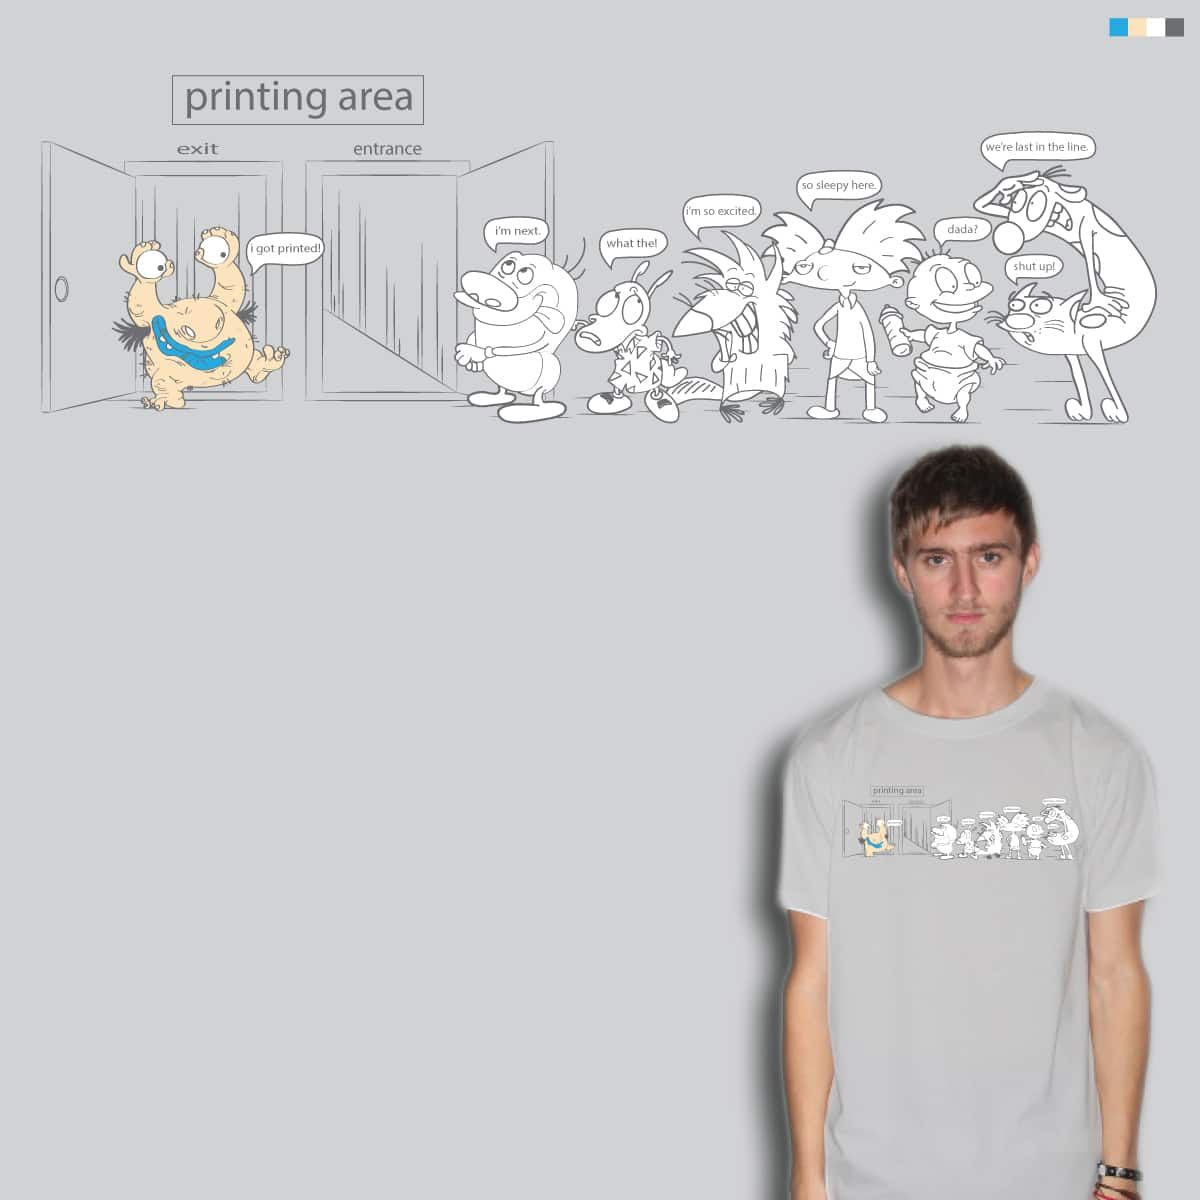 who's next on the print list? by je14 on Threadless